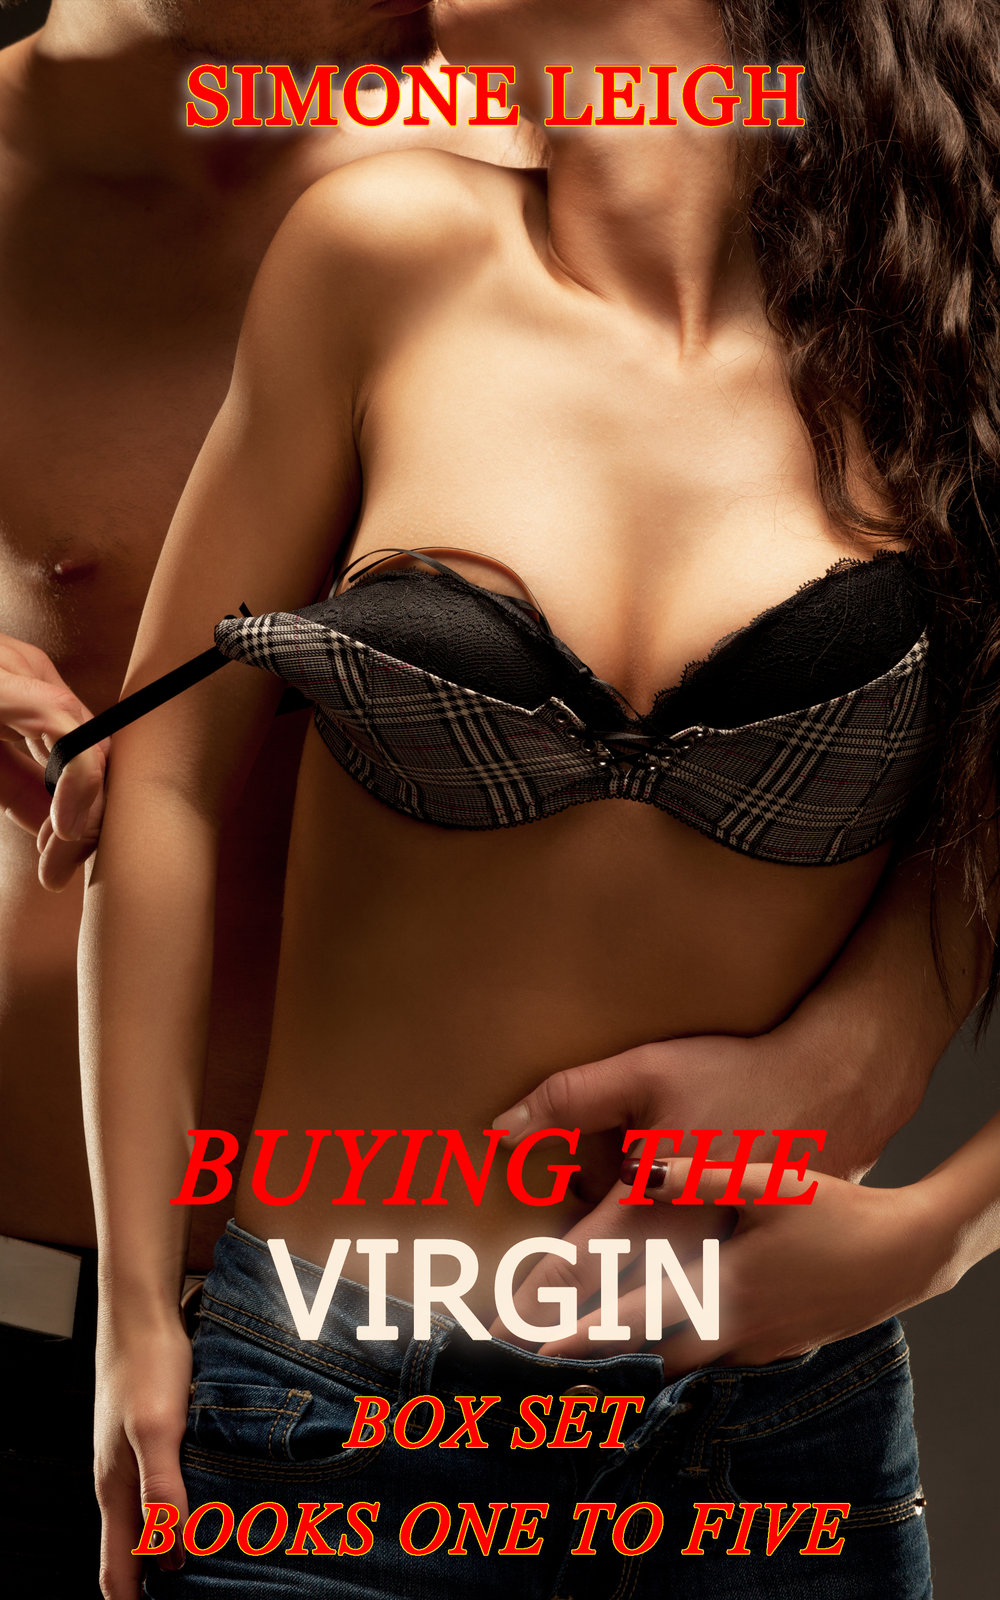 'Buying the Virgin' Box Set One - She Auctioned Her Own VirginityThe penniless Charlotte dreams of a bright future, but she has nothing to sell but herself and her virginity. She chooses to auction both to the highest bidder. This is the first episode in a steamy bdsm, menage erotica tale of a virgin and her first time with a mature alpha male billionaire, his friend...... and others. Readers of this story will read of a young woman with her Master as he leads her along an erotic trail of adventure and excitement through bdsm, menage and voyeurism. Book 1 – The Virgin – AuctionedBook 2 – The Virgin – SoldBook 3 – The Virgin – No MoreBook 4 – The Virgin – UnleashedBook 5 – The Virgin - Fulfilled